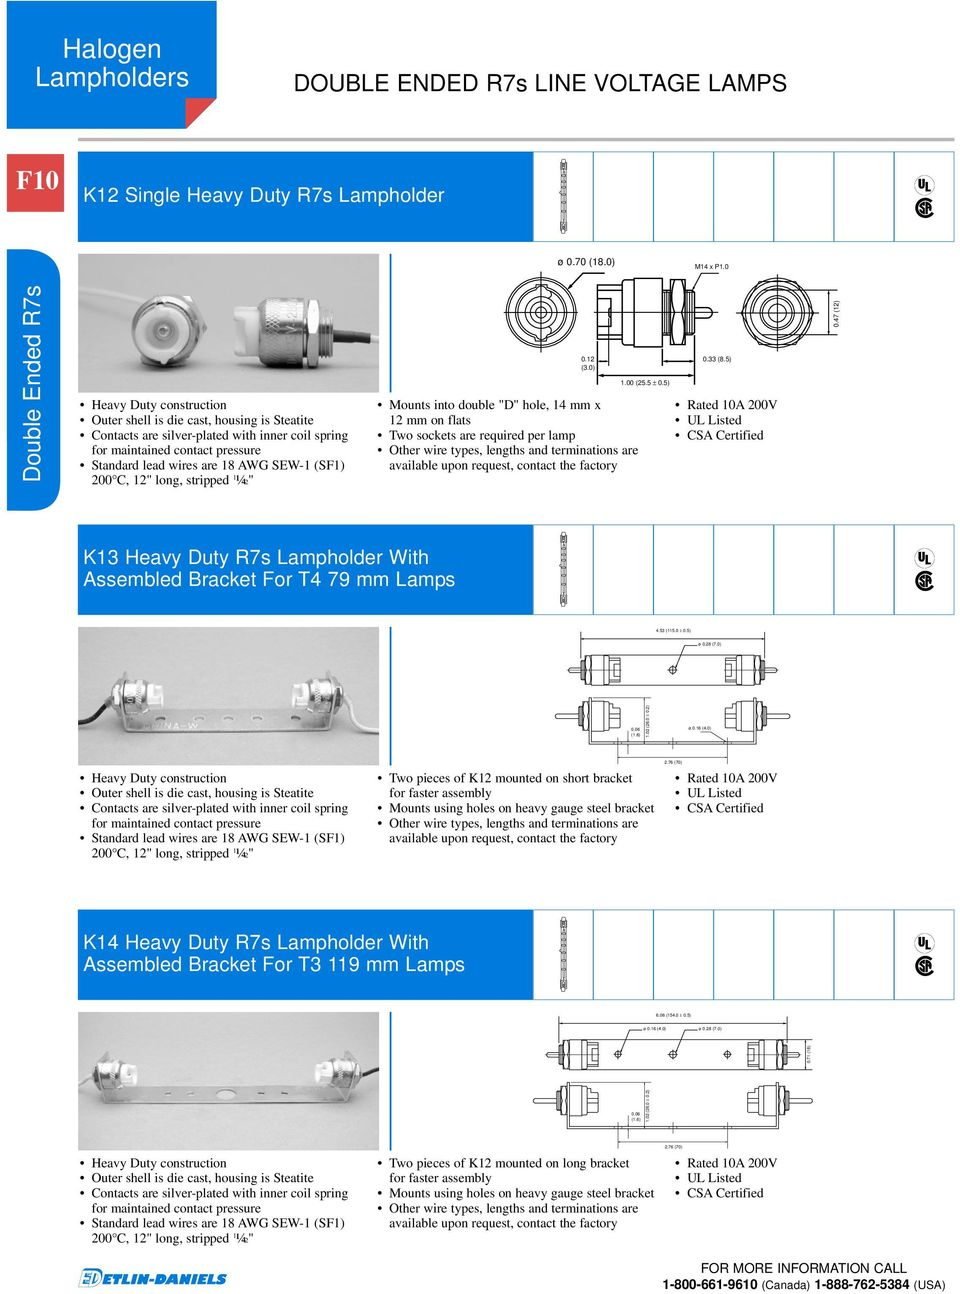 Section F Halogen Lampholders Wilson Avenue Lamp Wiring Diagram Two Sockets 0 Mounts Into Double D Hole 14 Mm X 12 On